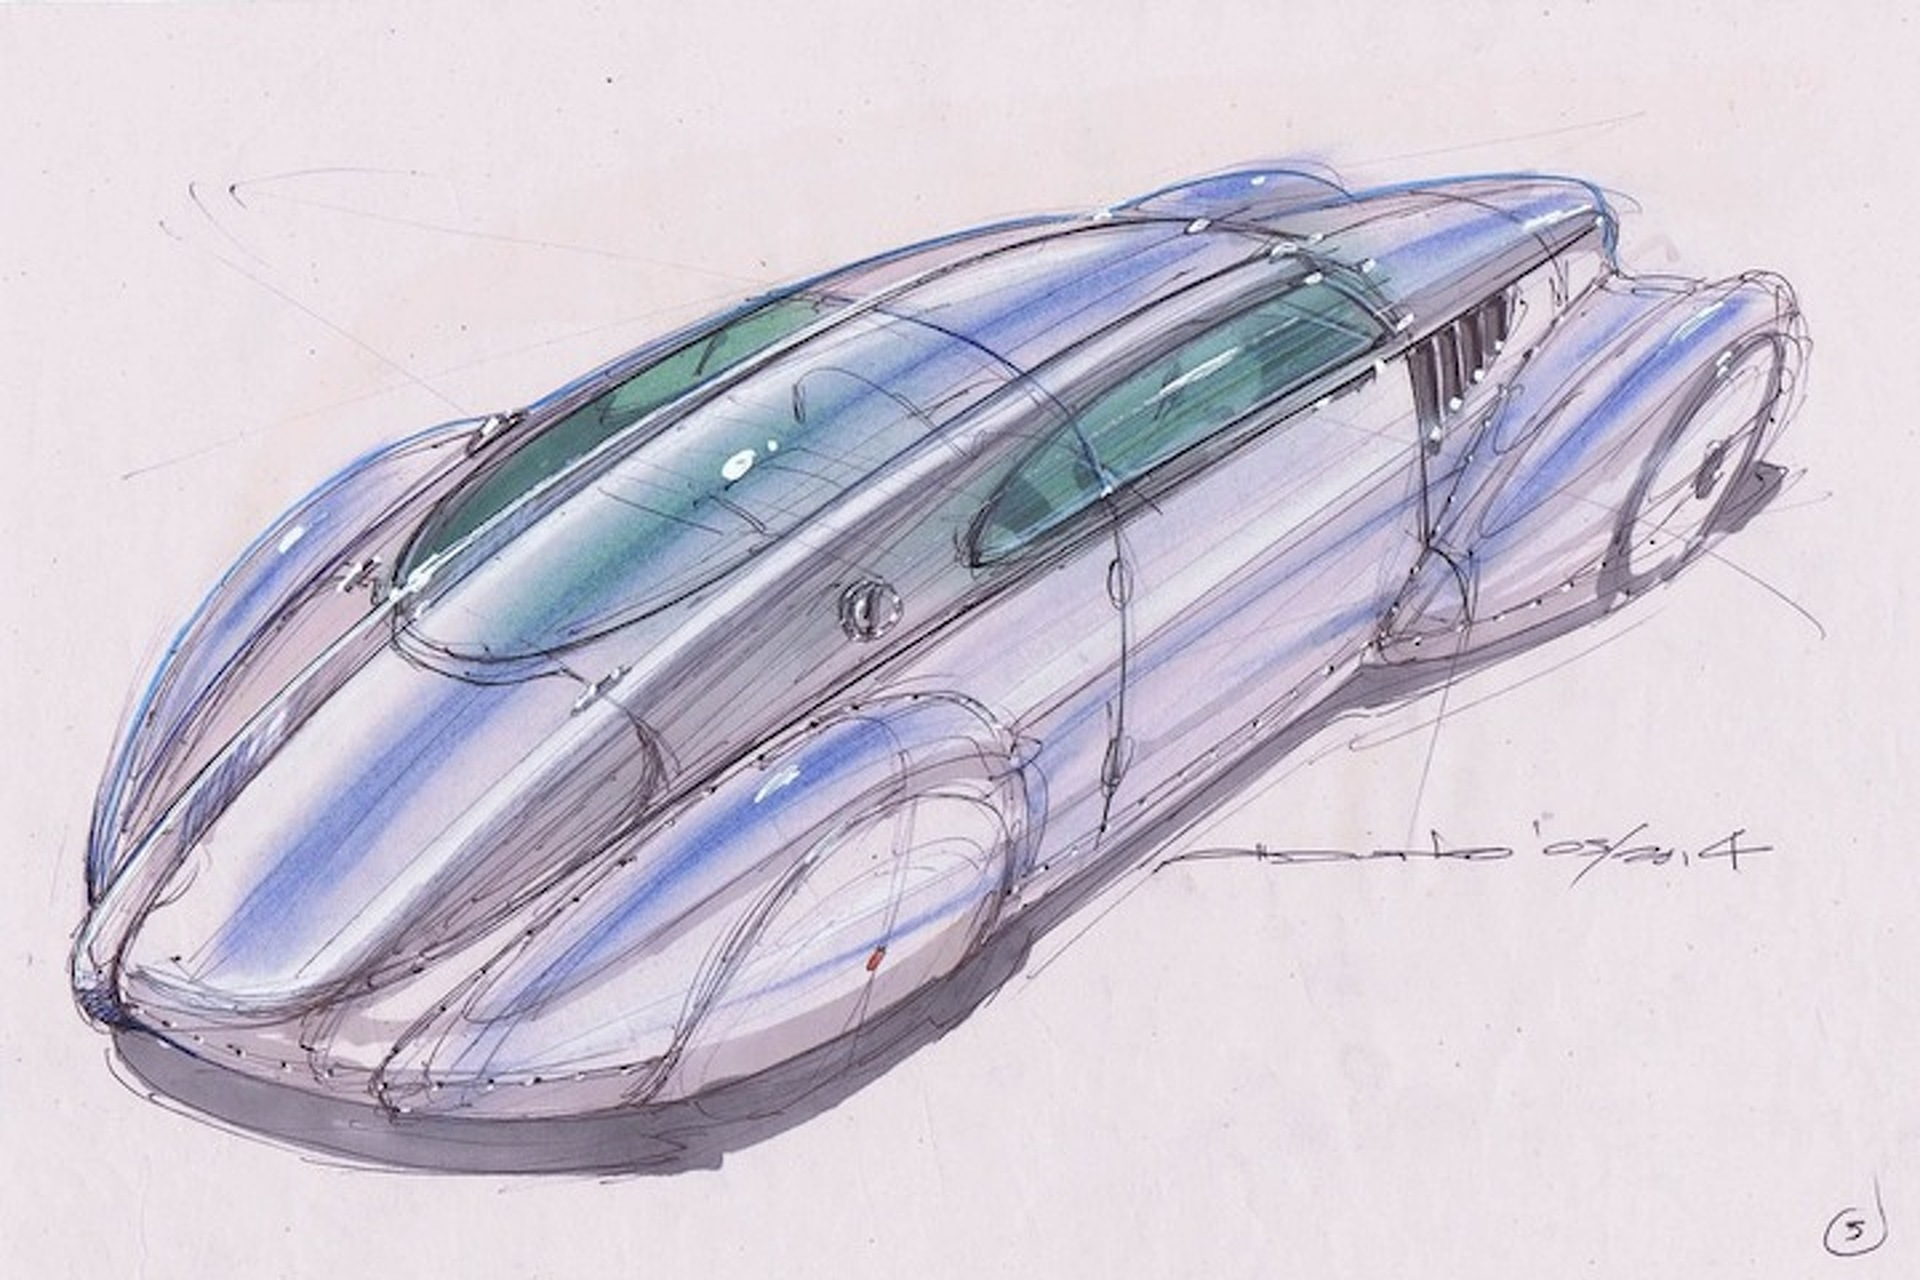 ICON Helios Project Could Use a BMW M3 Base [UPDATE]